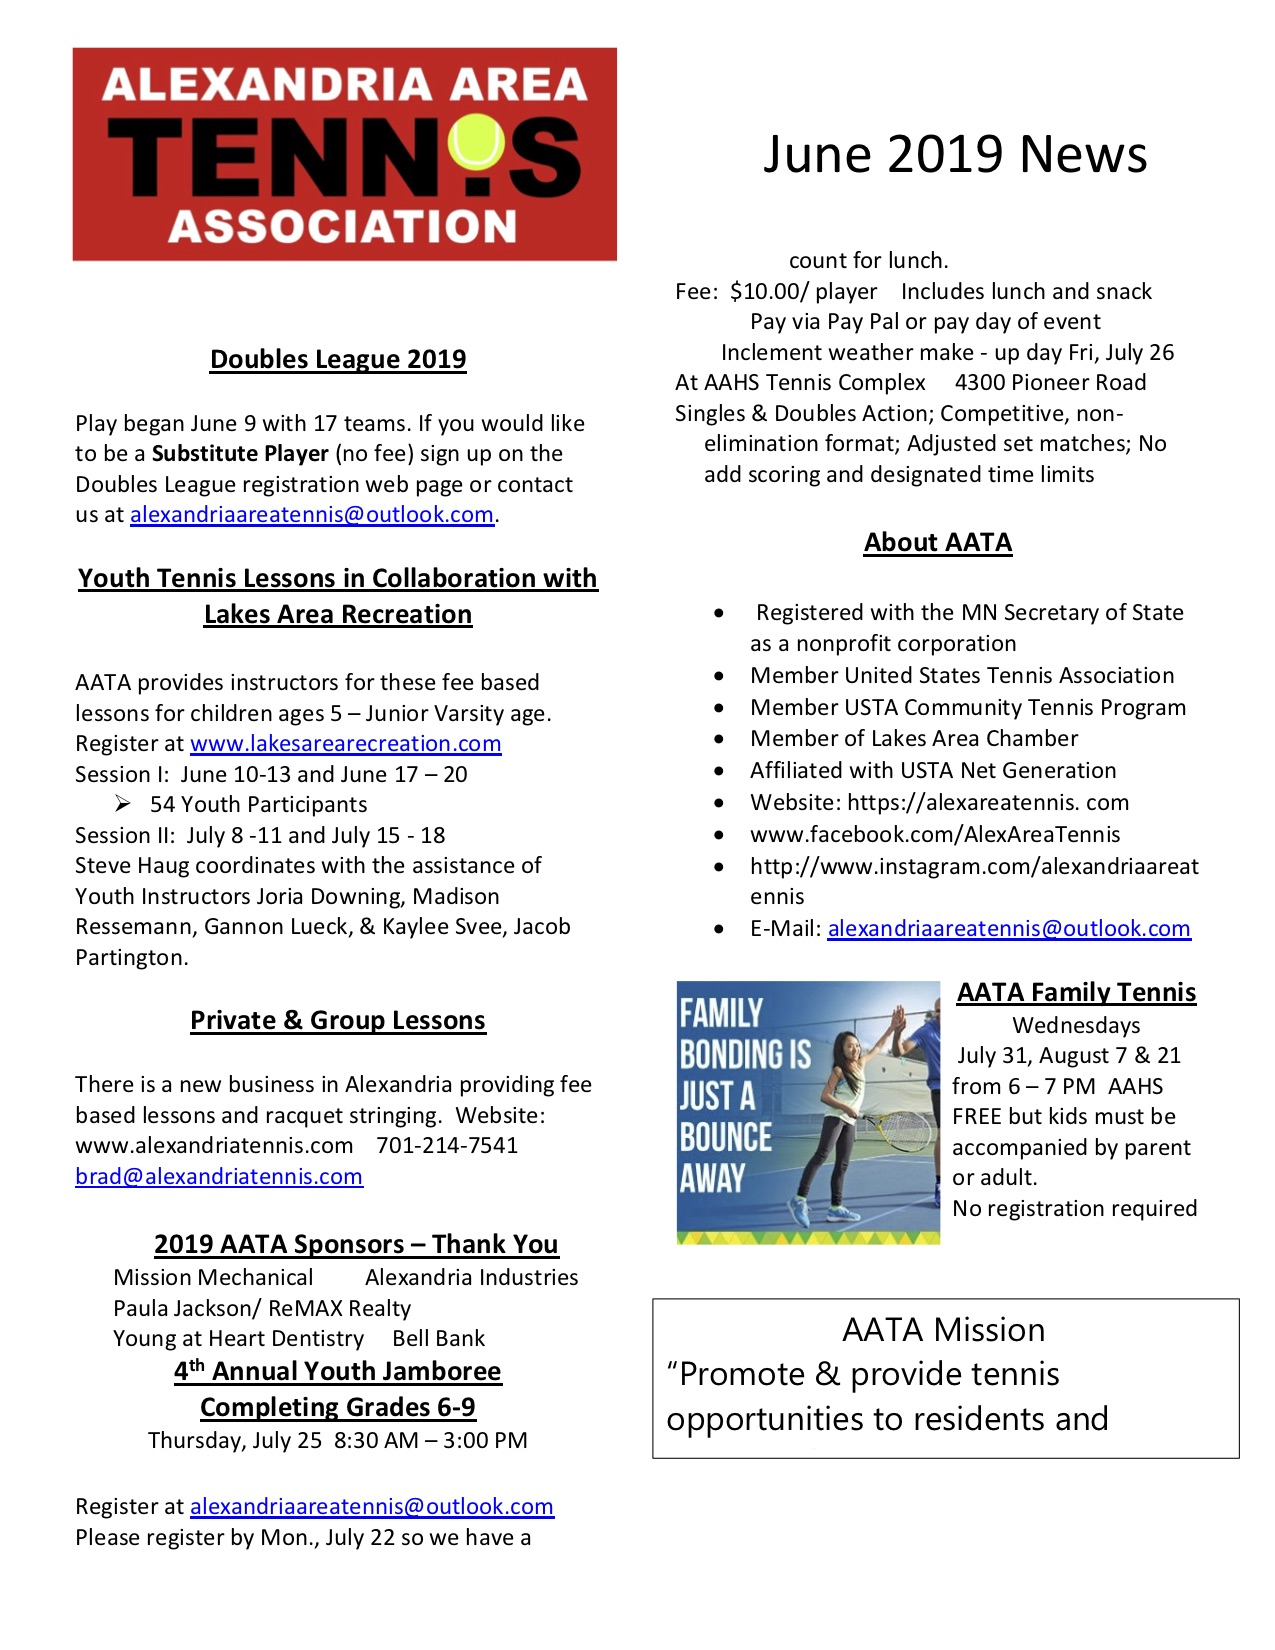 AATA June 2019 News